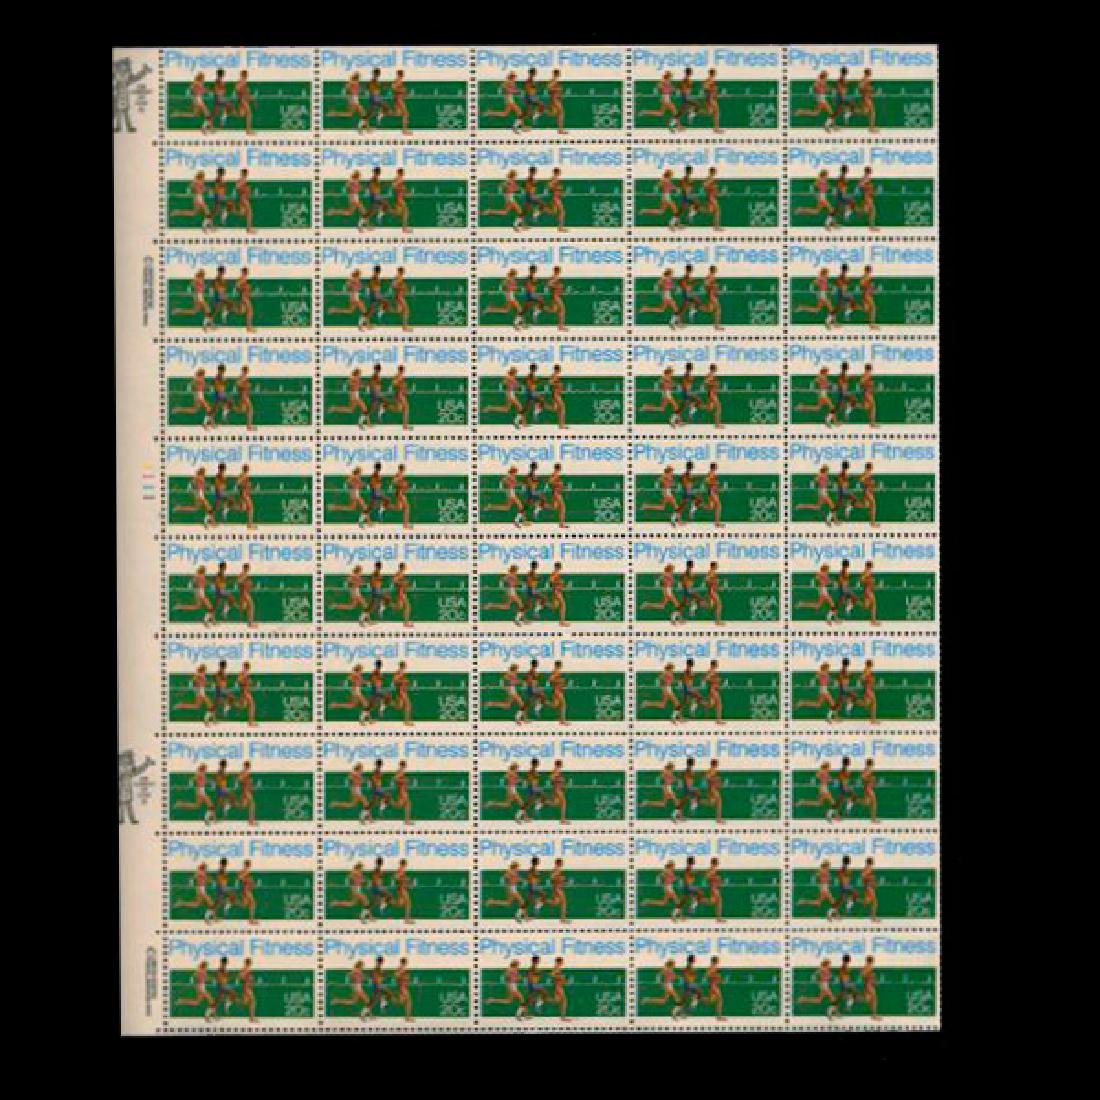 1983 US Sheet 20c Physical Fitness Stamps MNH Error